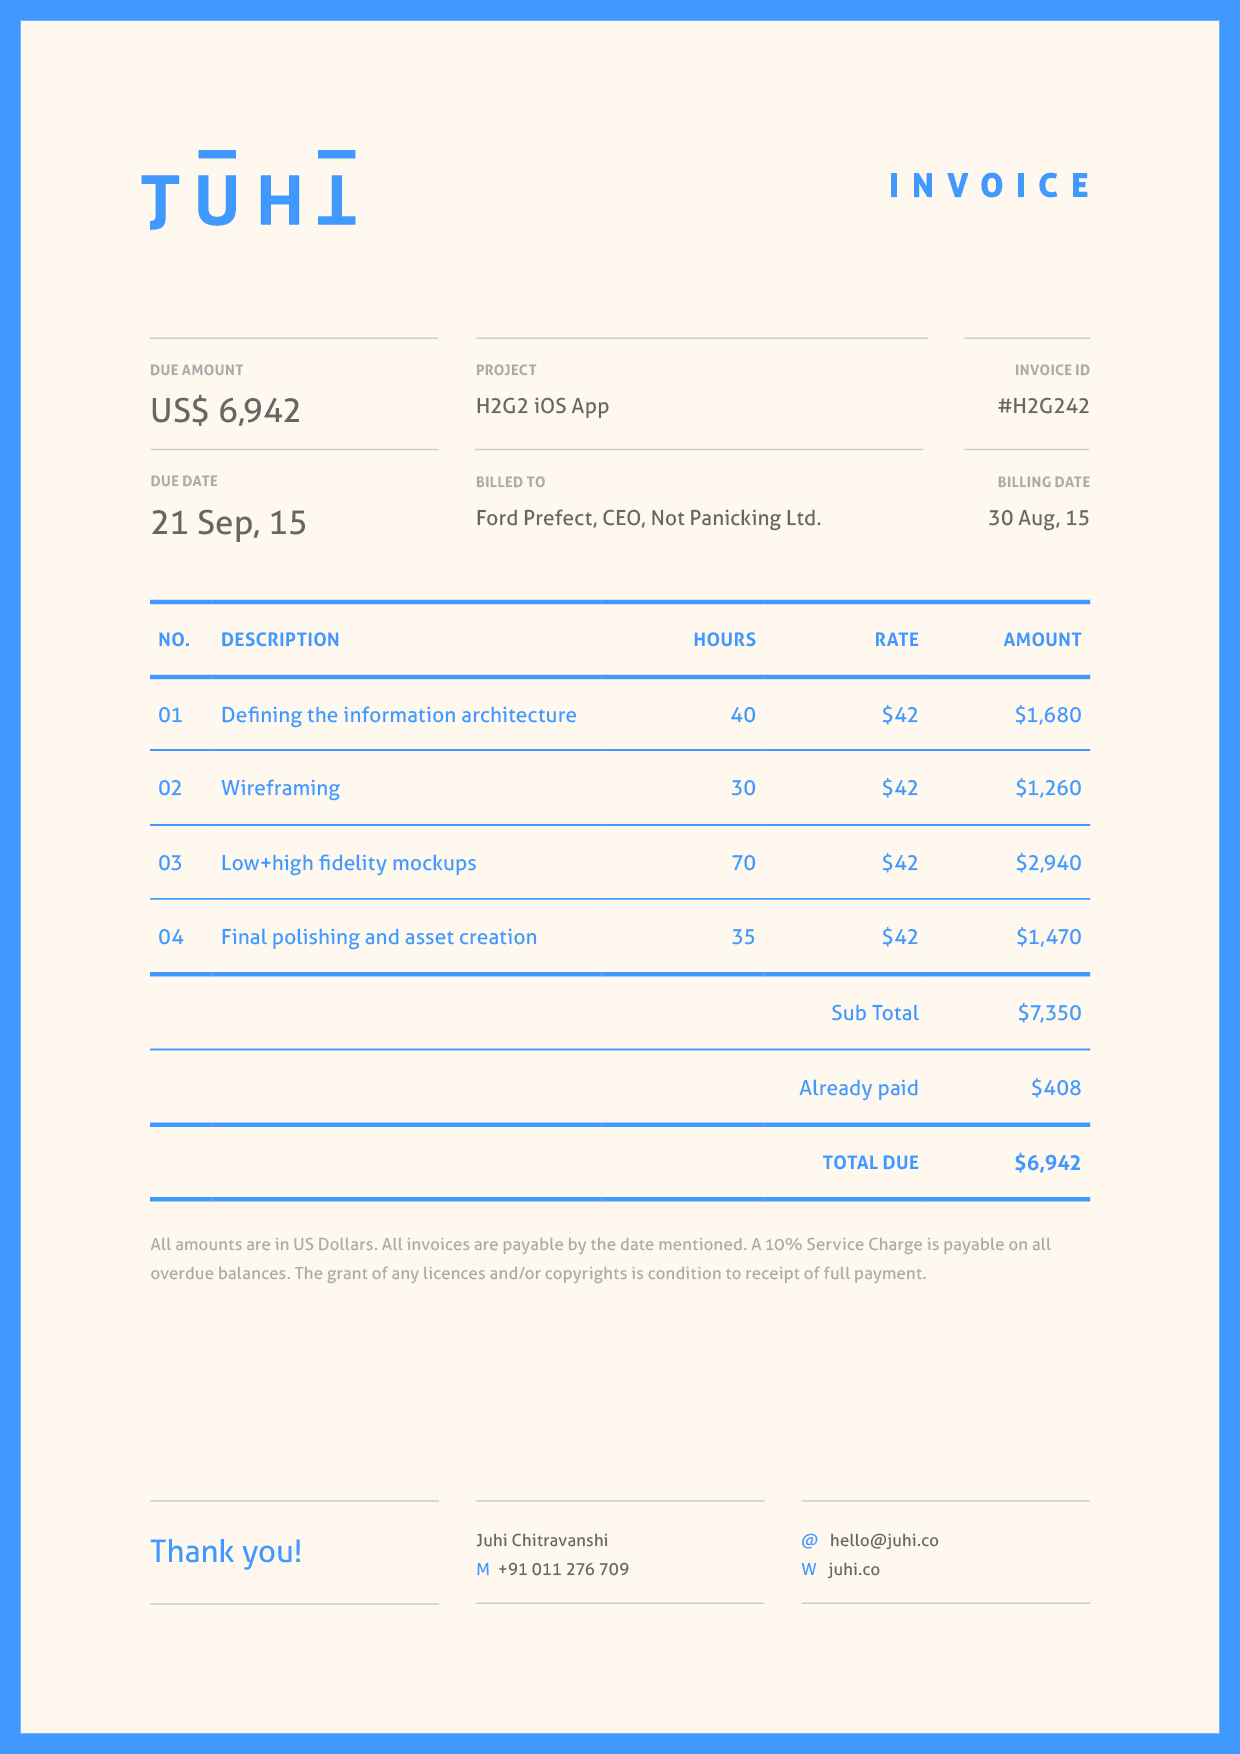 Ultrablogus  Unique Dont Hold Back On Your Invoice  Inspiring Designs  With Engaging Invoice By Juhi Chitravanshi Follow With Lovely Mazda Invoice Price Also Invoice Generator Pdf In Addition Invoice With Gst And Invoice And Proforma Invoice As Well As Service Invoice Format In Word Additionally Invoice Wizard From Inspirationfeedcom With Ultrablogus  Engaging Dont Hold Back On Your Invoice  Inspiring Designs  With Lovely Invoice By Juhi Chitravanshi Follow And Unique Mazda Invoice Price Also Invoice Generator Pdf In Addition Invoice With Gst From Inspirationfeedcom